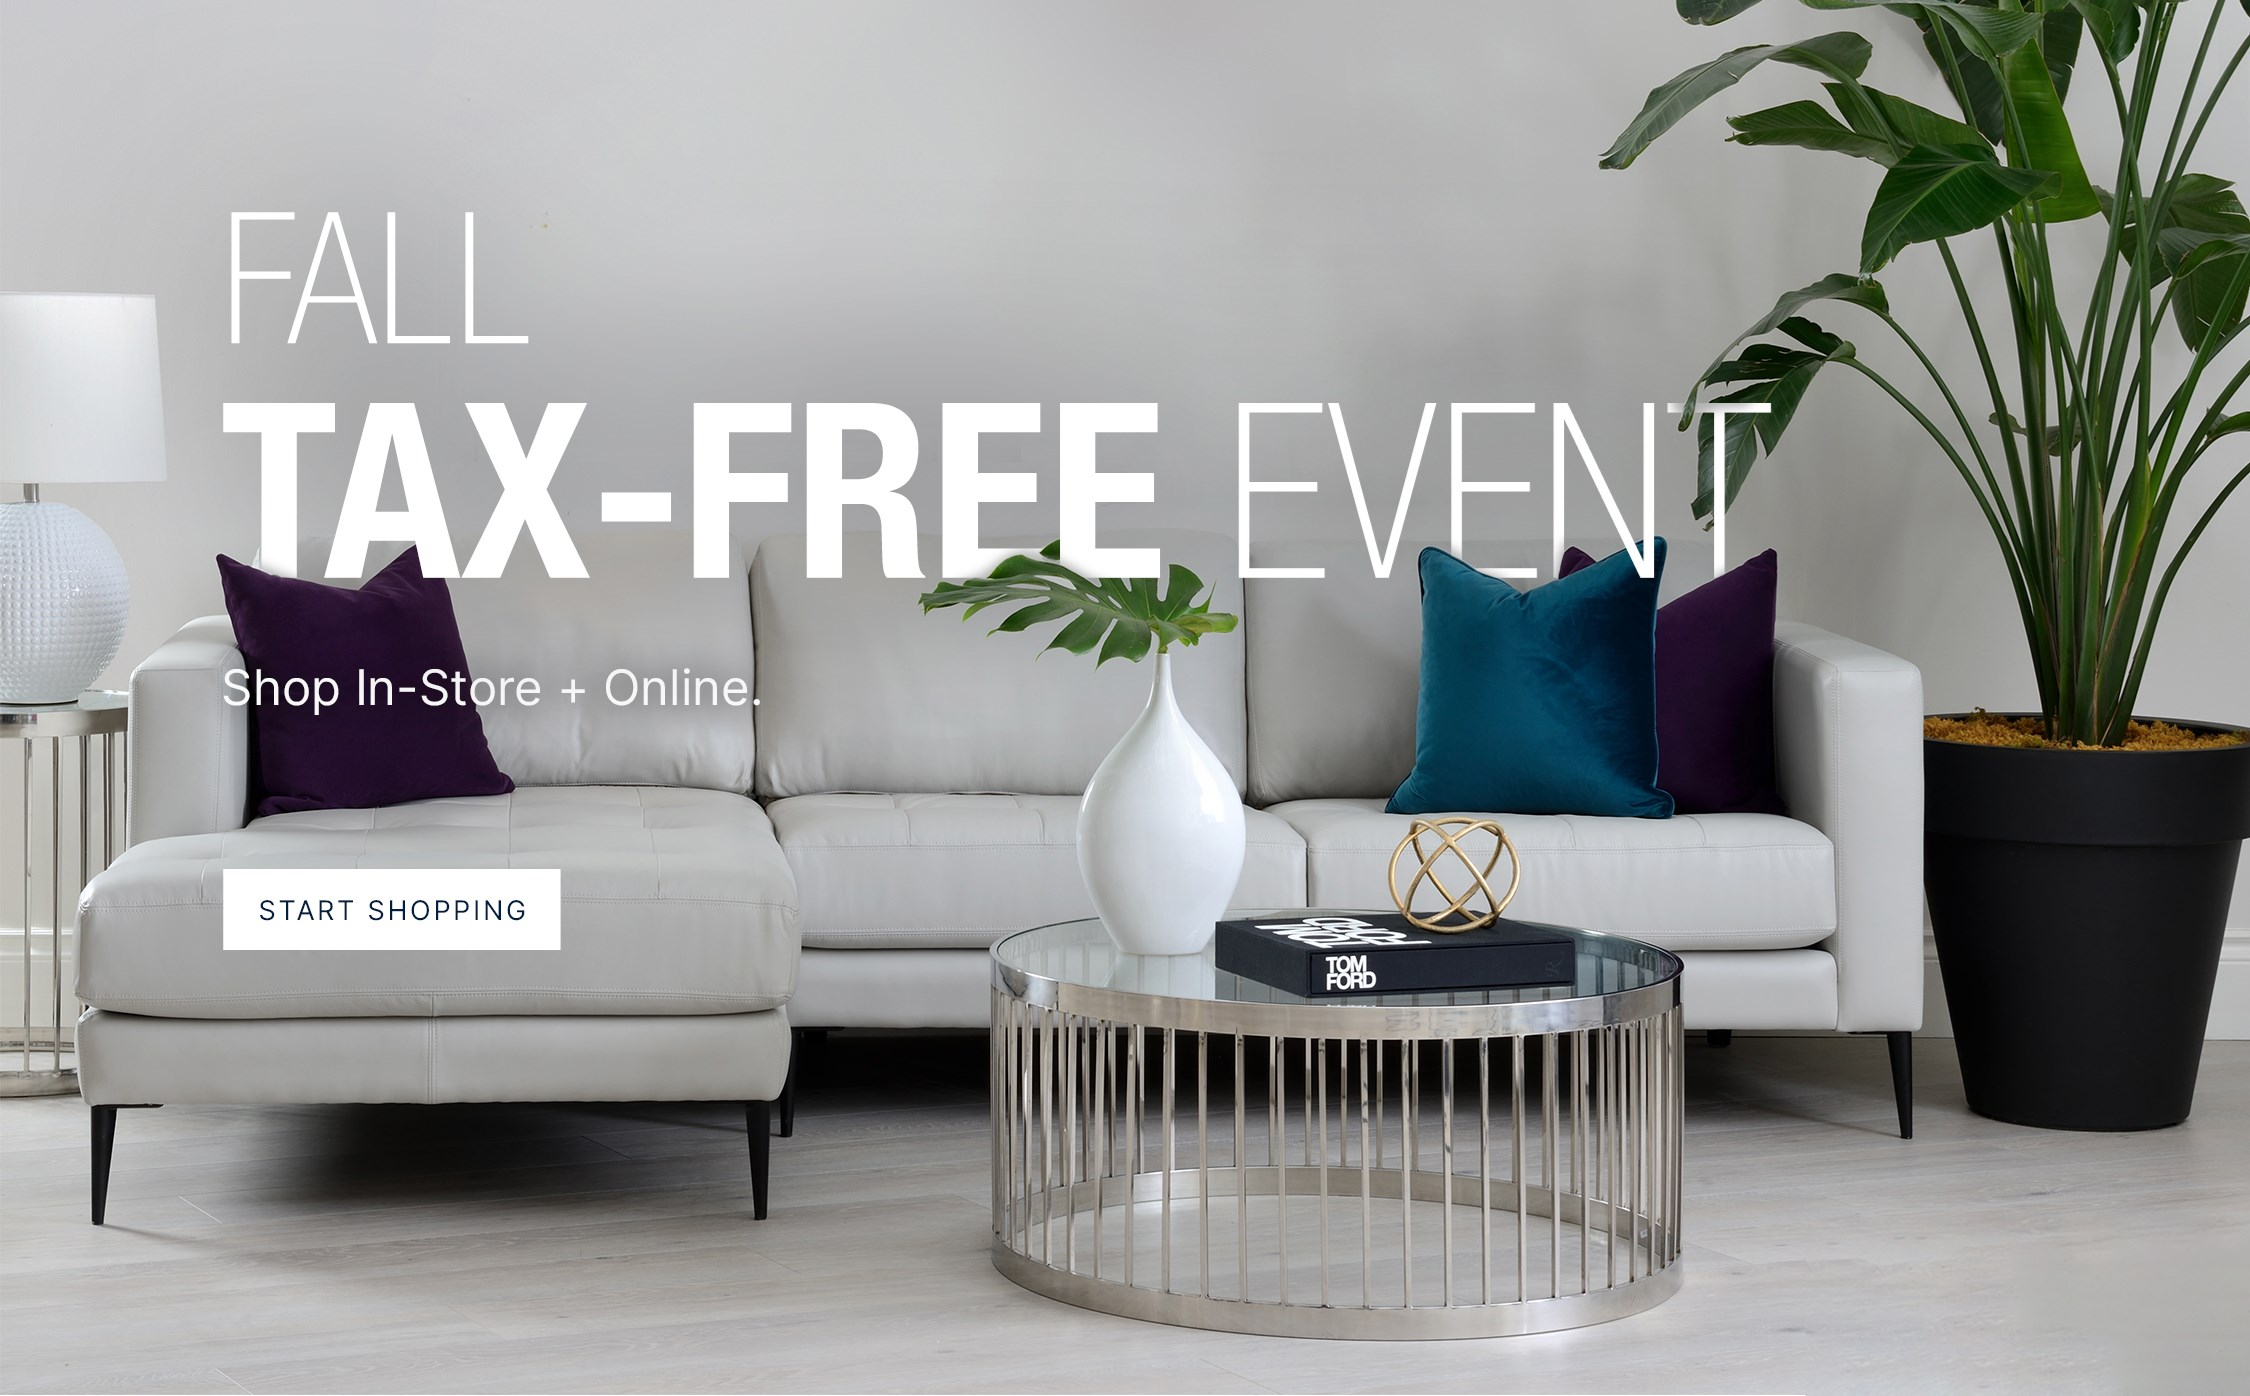 Fall Tax-Free Event! Shop in-store and online.